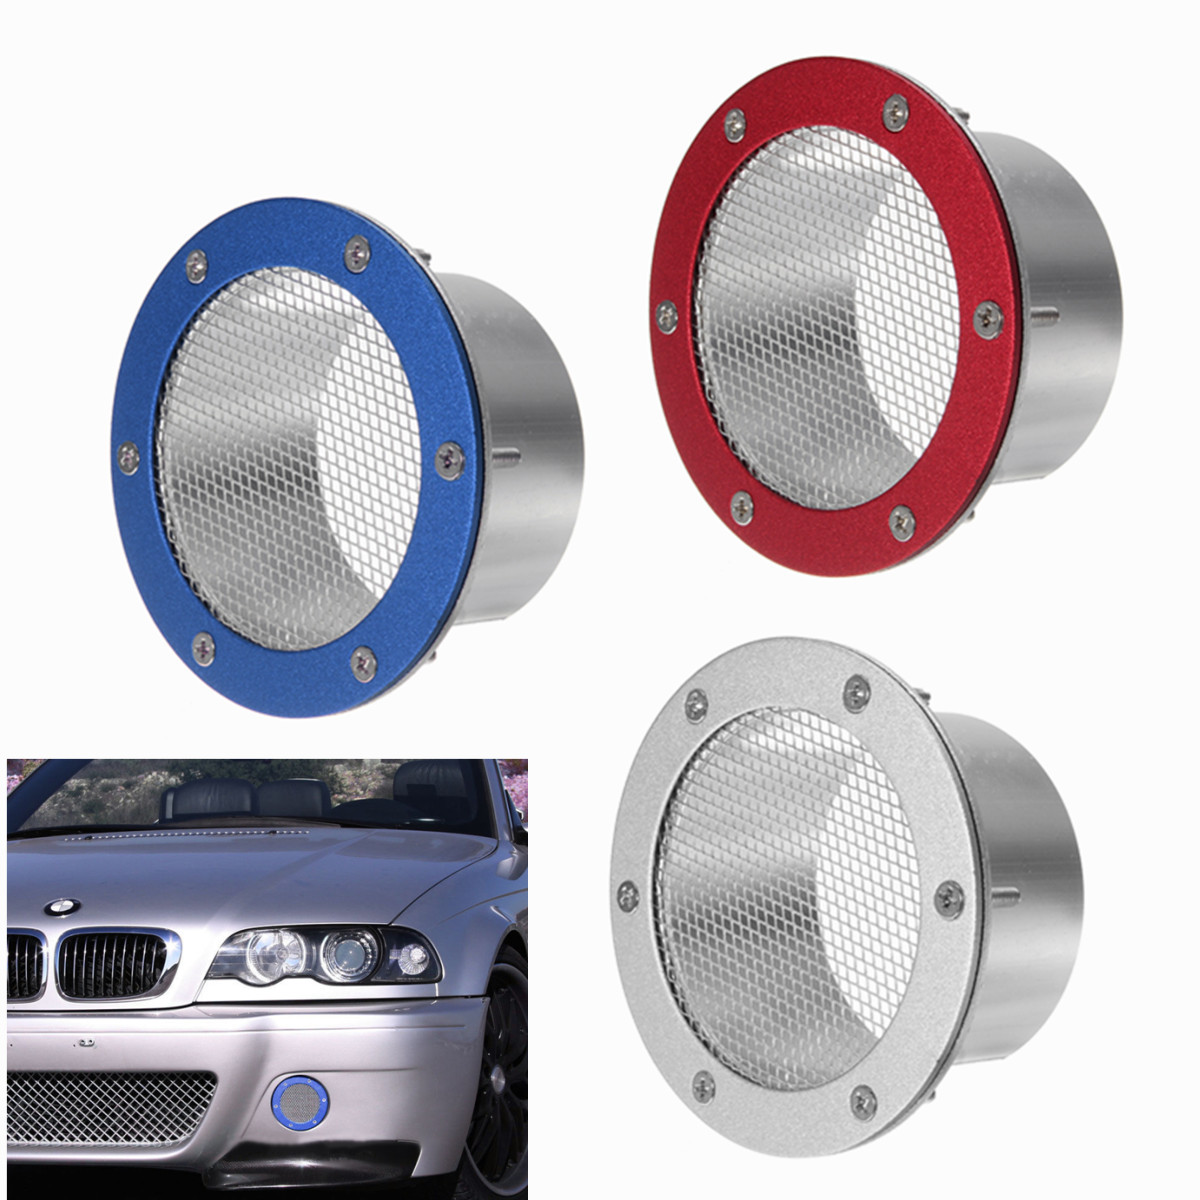 Car Auto Universal Air Vent Dust Air Duct Grille Air Intake Bumper Vent Inlet Air Duct Cold Air Filter For Benz For BMW For Audi